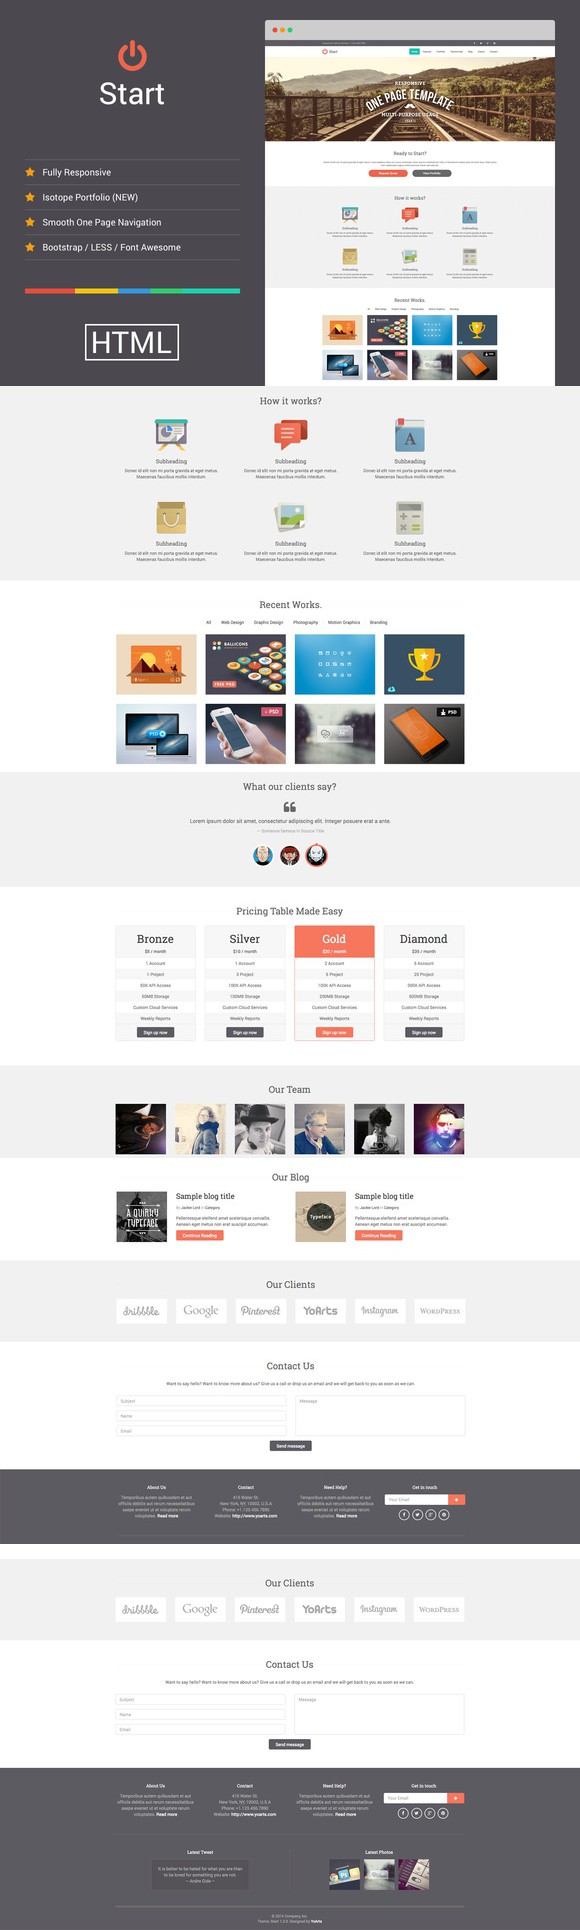 Start Responsive One Page Template | Start Responsive One Page Template Pinterest Template